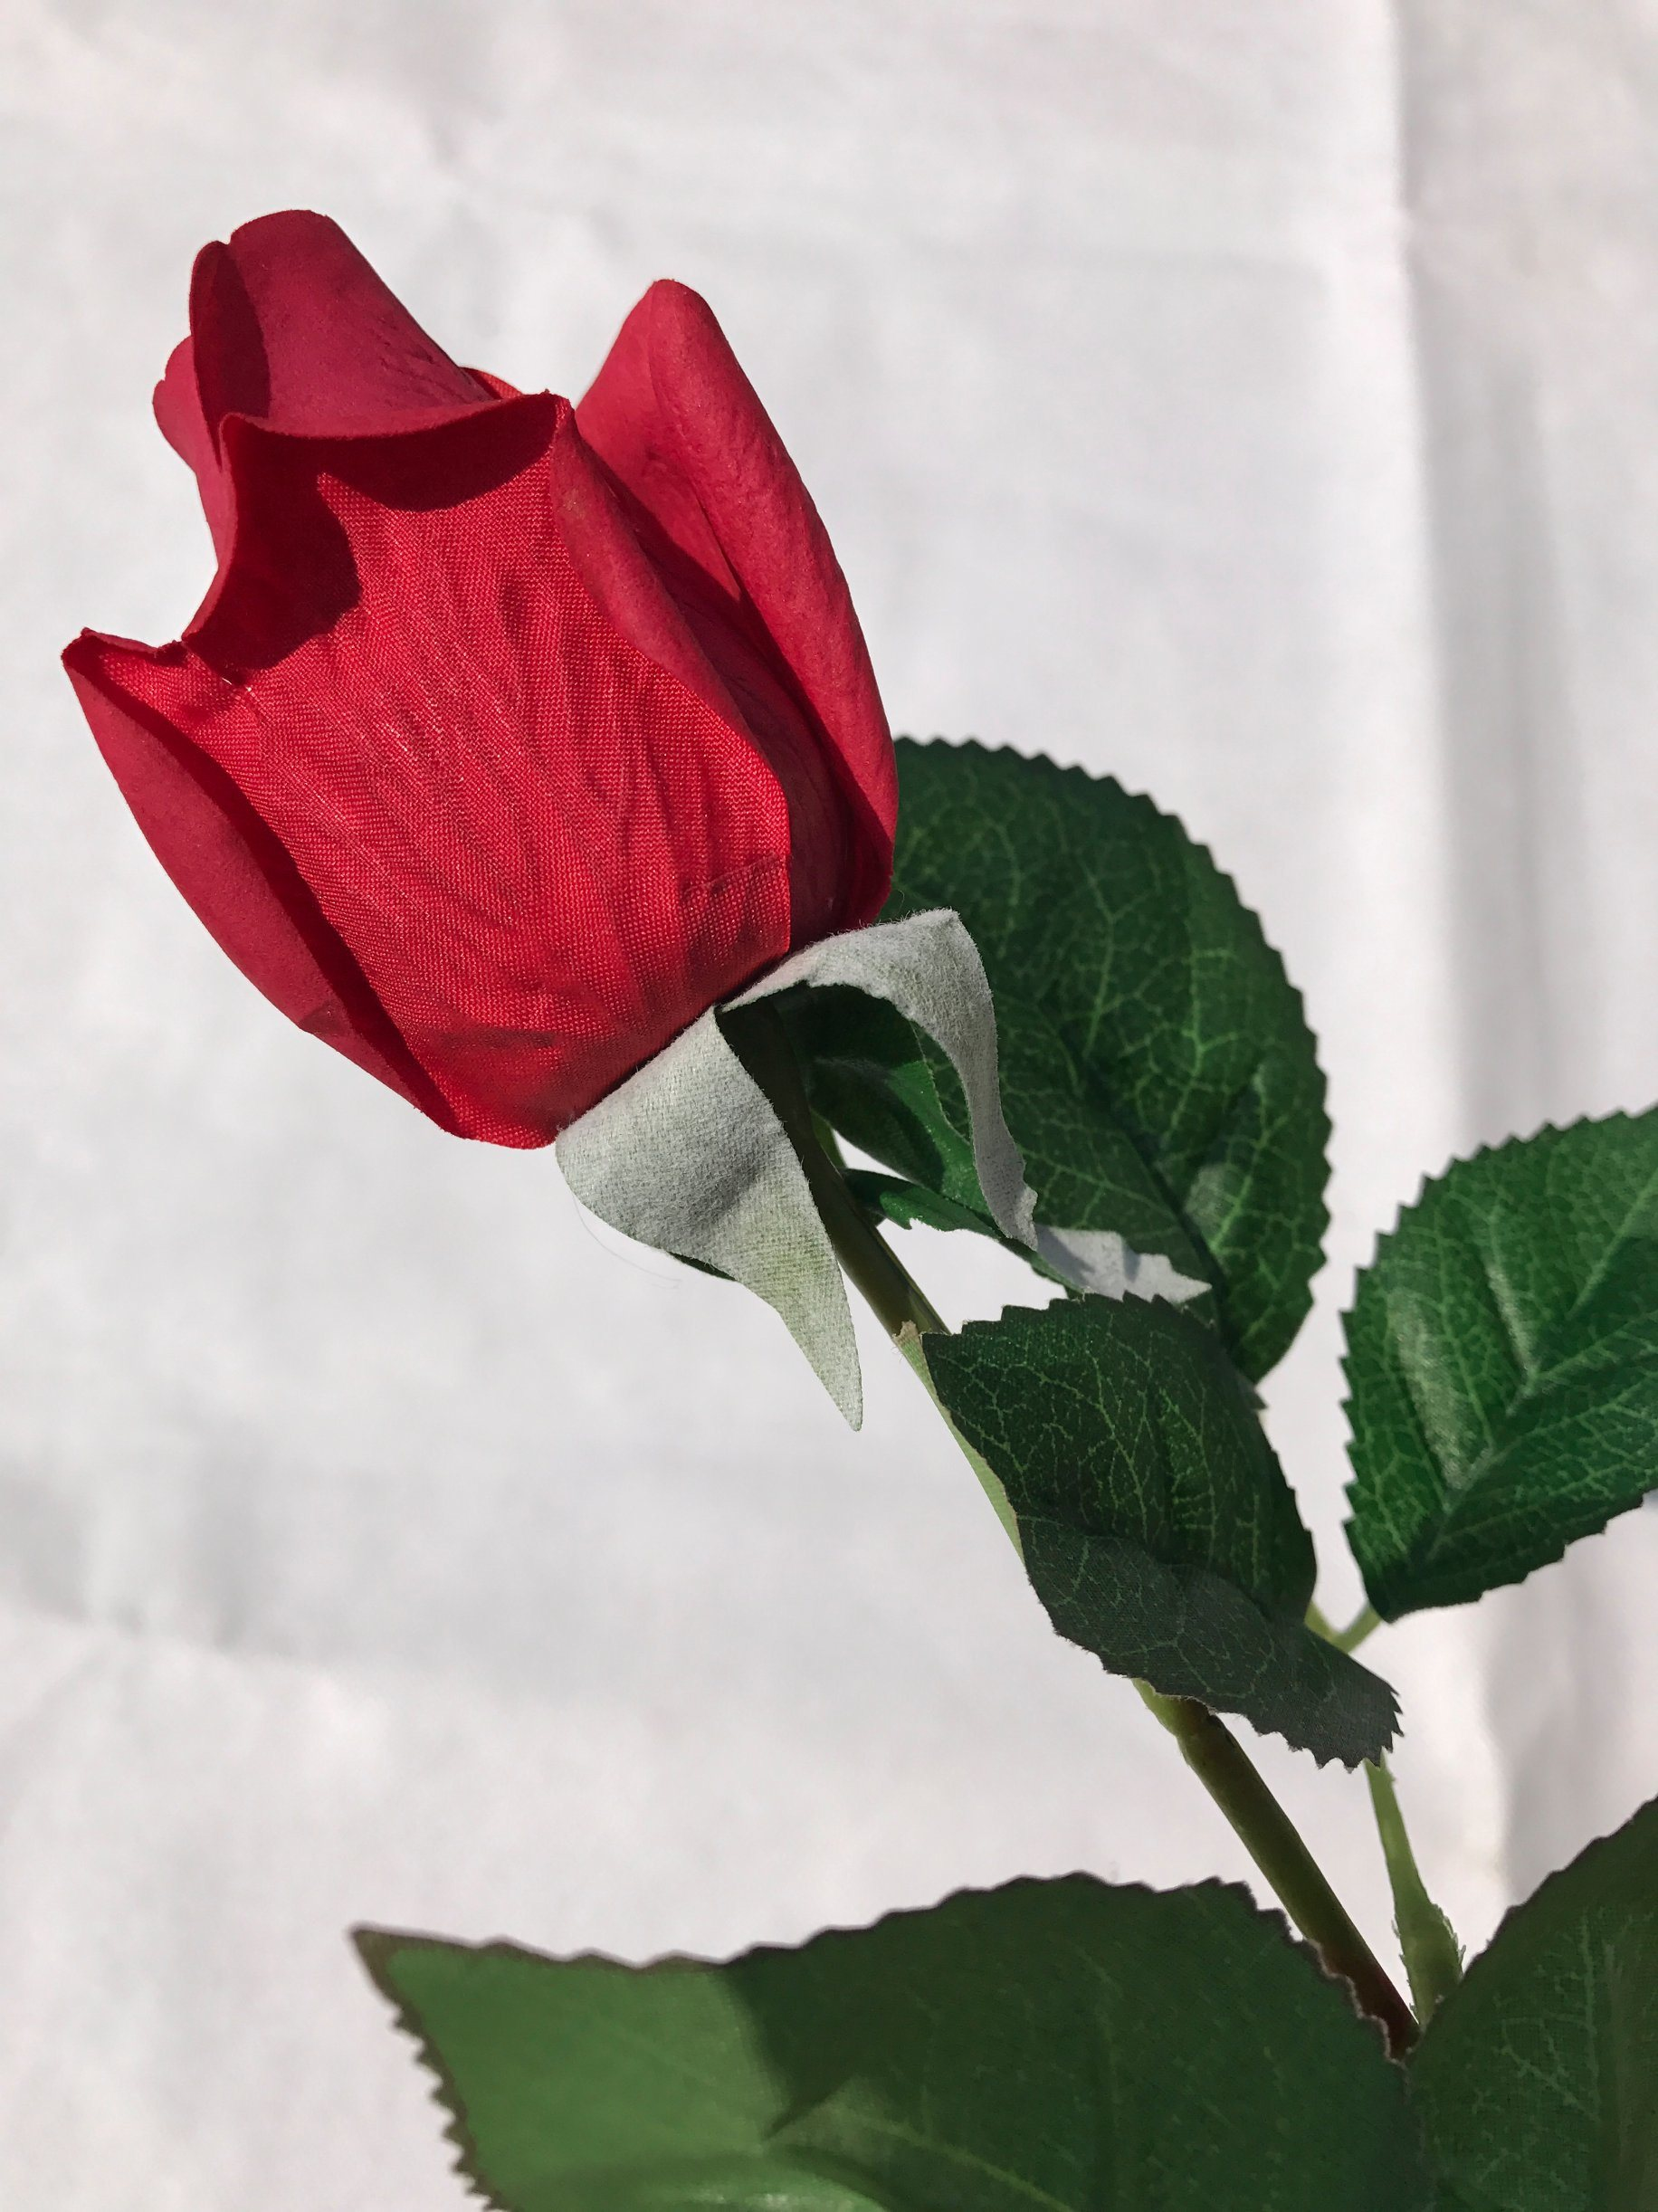 Artifical Rose Bud Flowers Real Touch Fake Flowers for Home Wedding Decoration